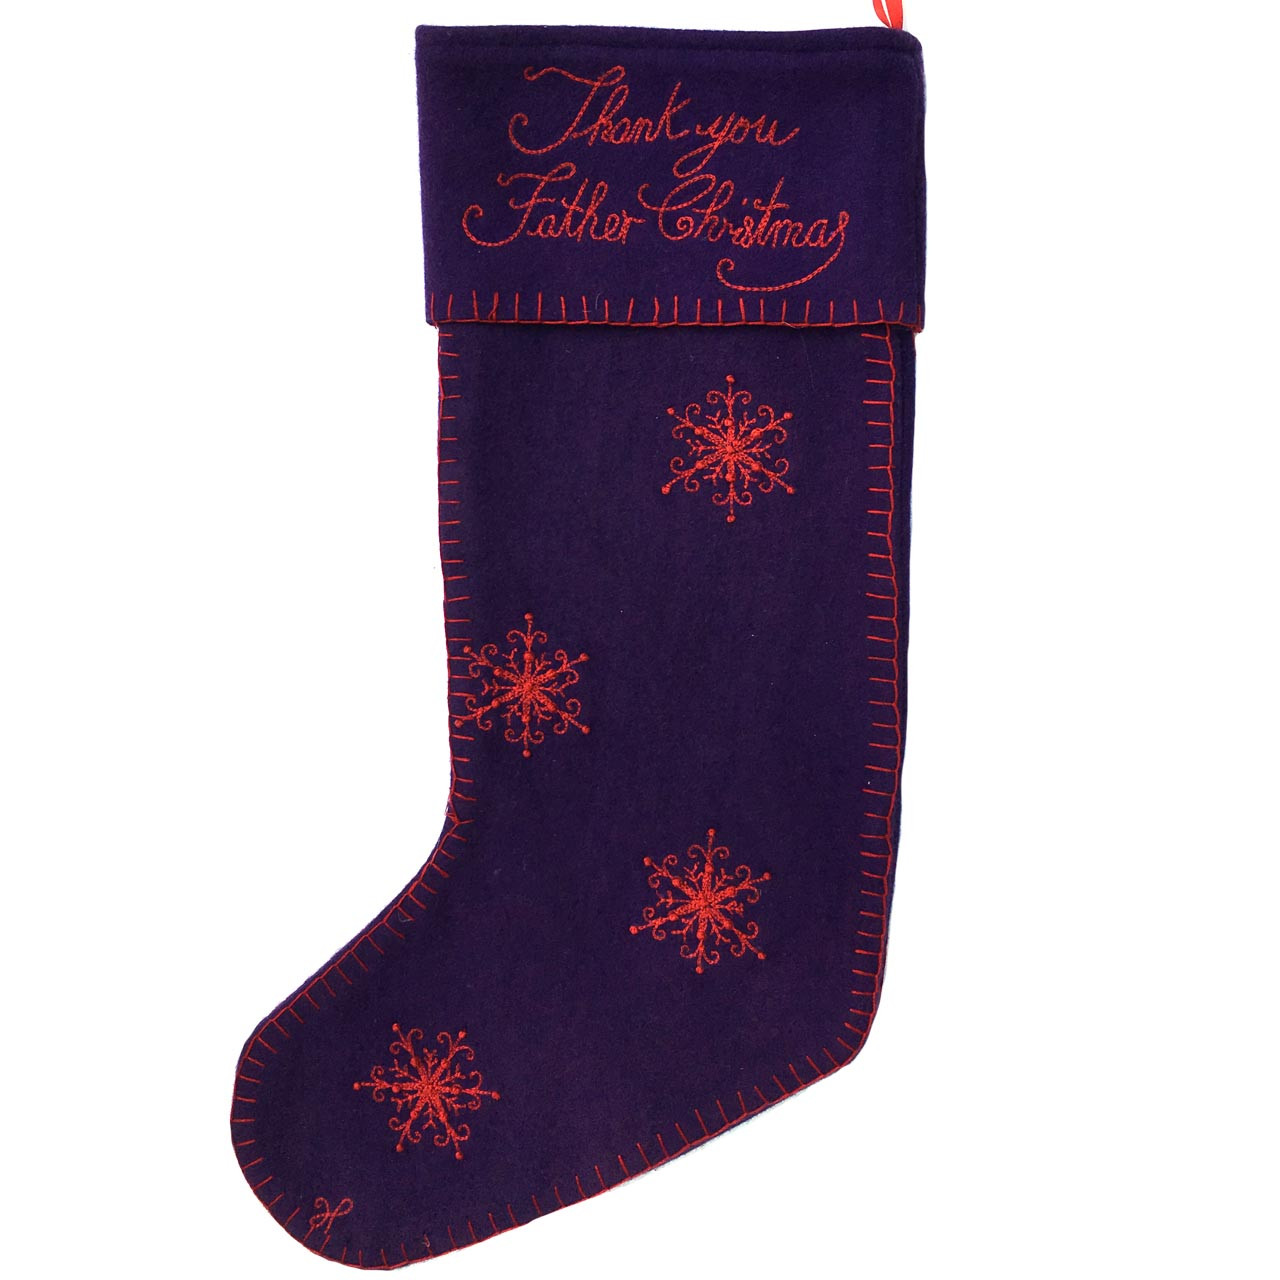 jan constantine thank you father christmas stocking purple - Purple Christmas Stocking